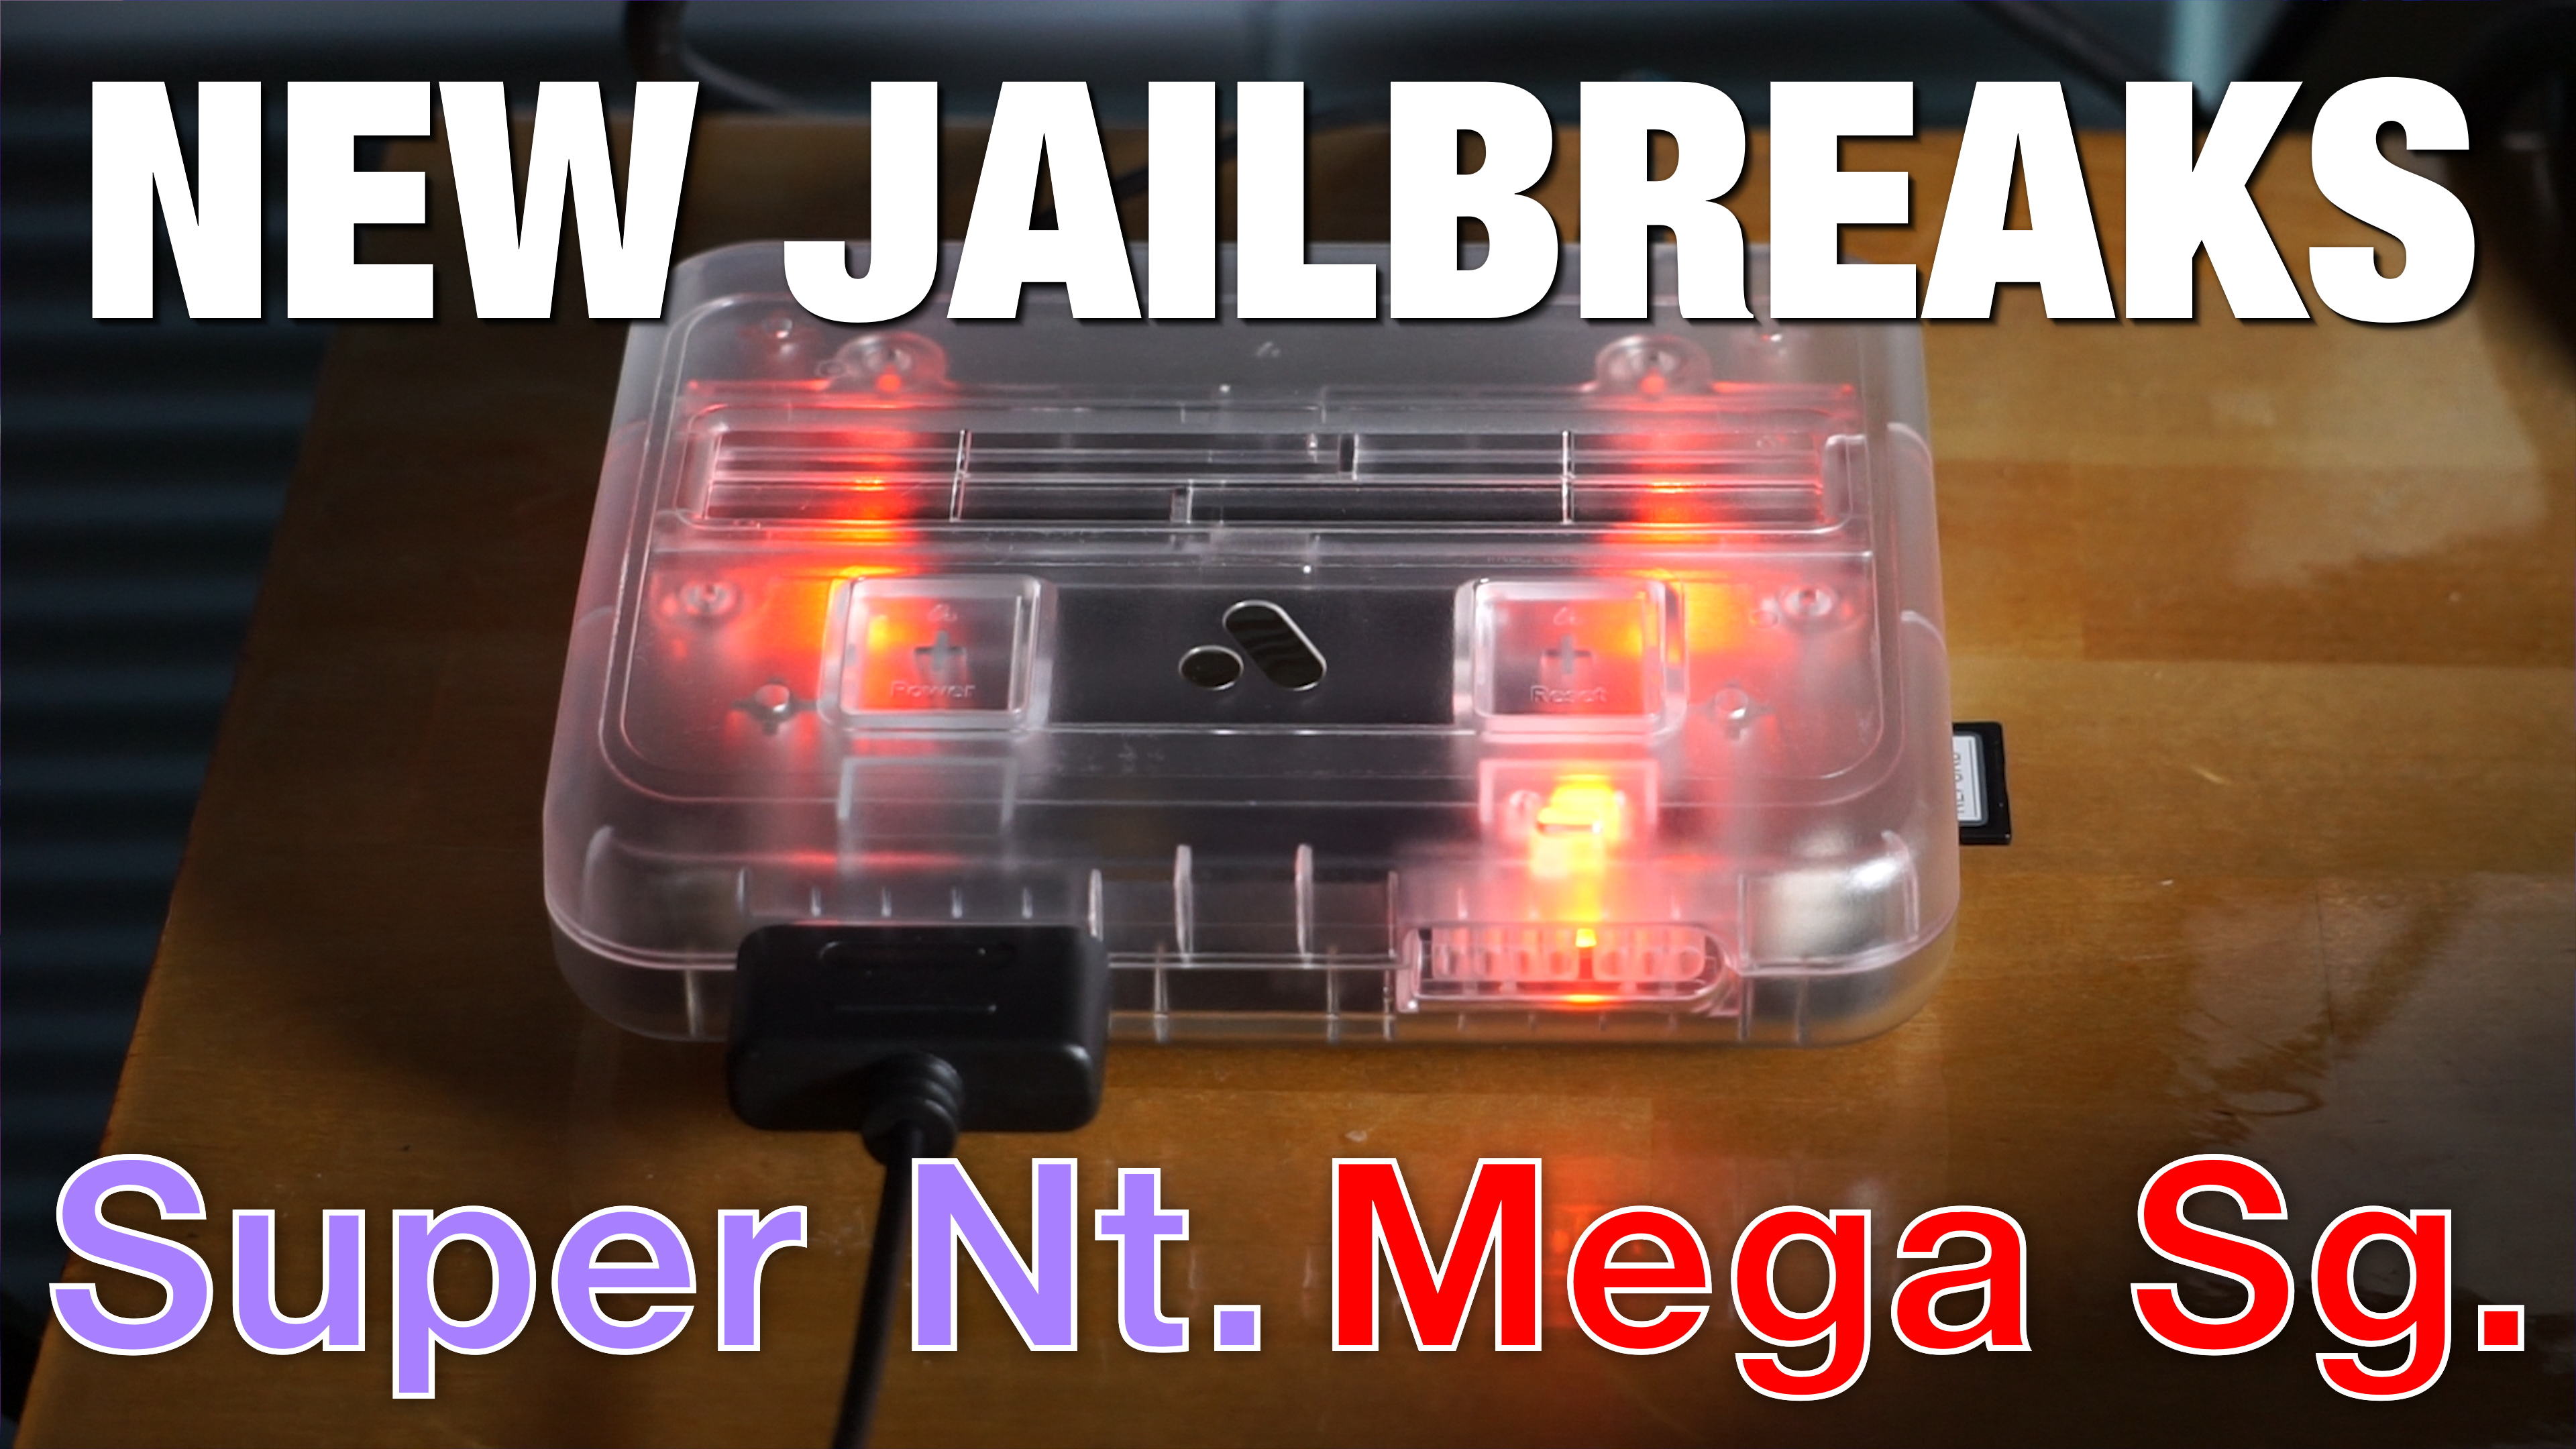 New Super Nt Jailbreak brings Special Chip Support